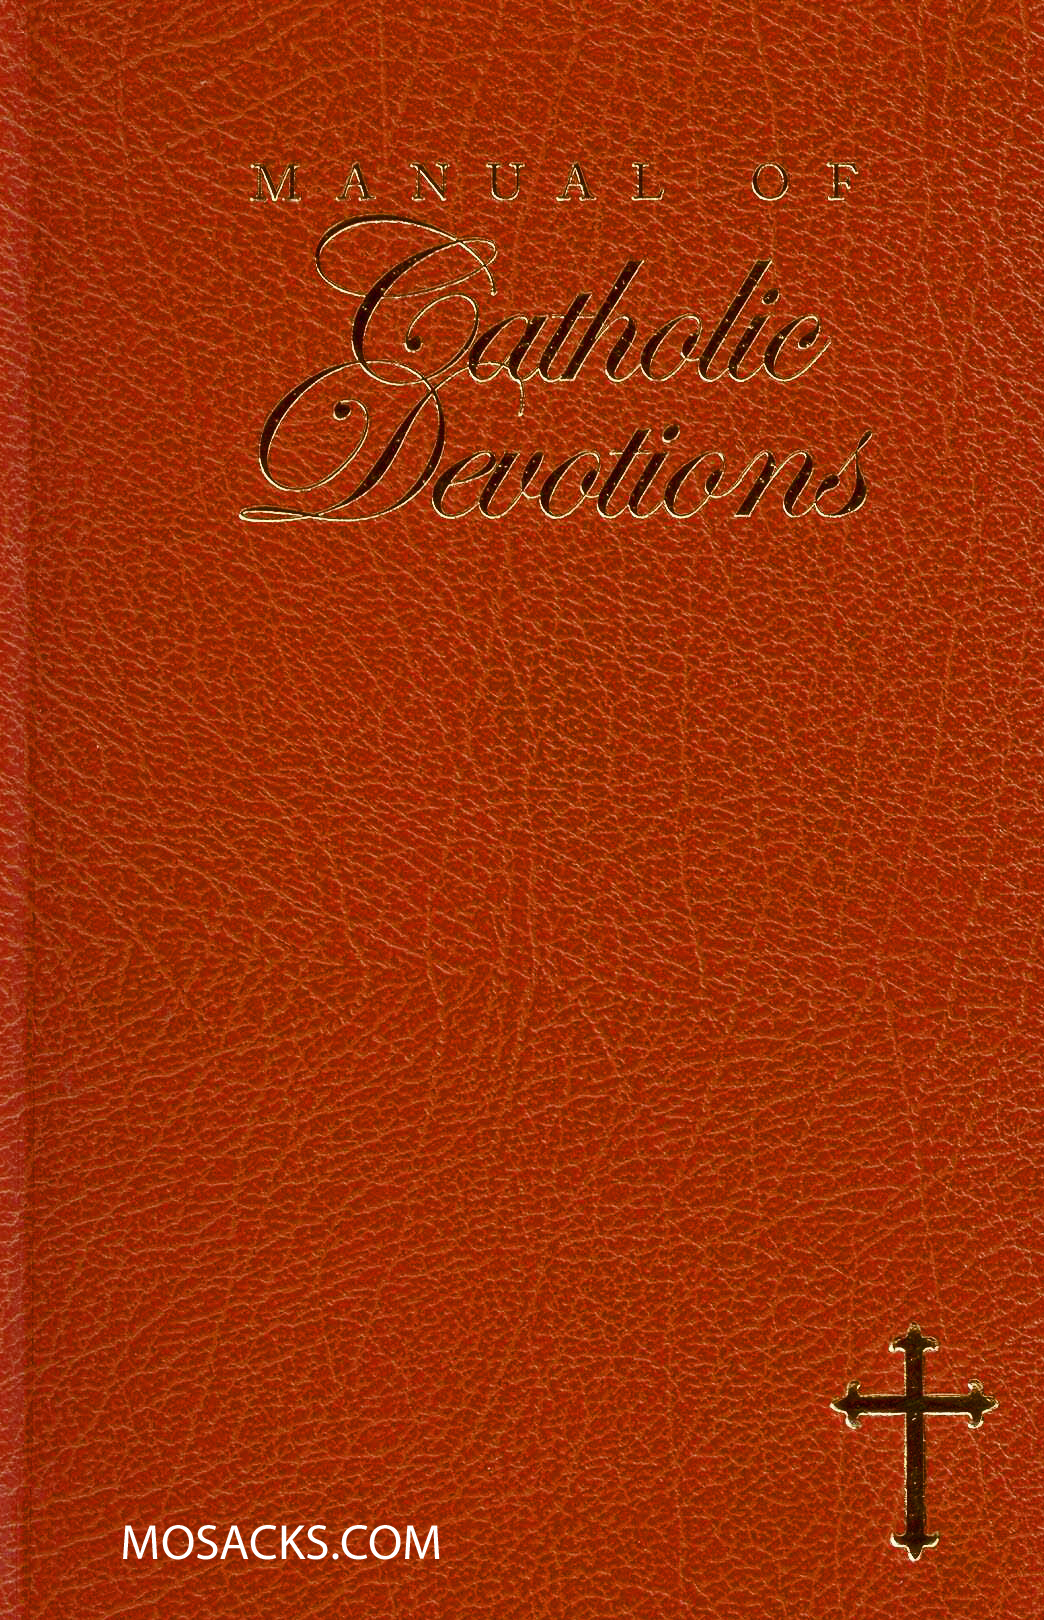 Manual of Catholic Devotions in Large Print